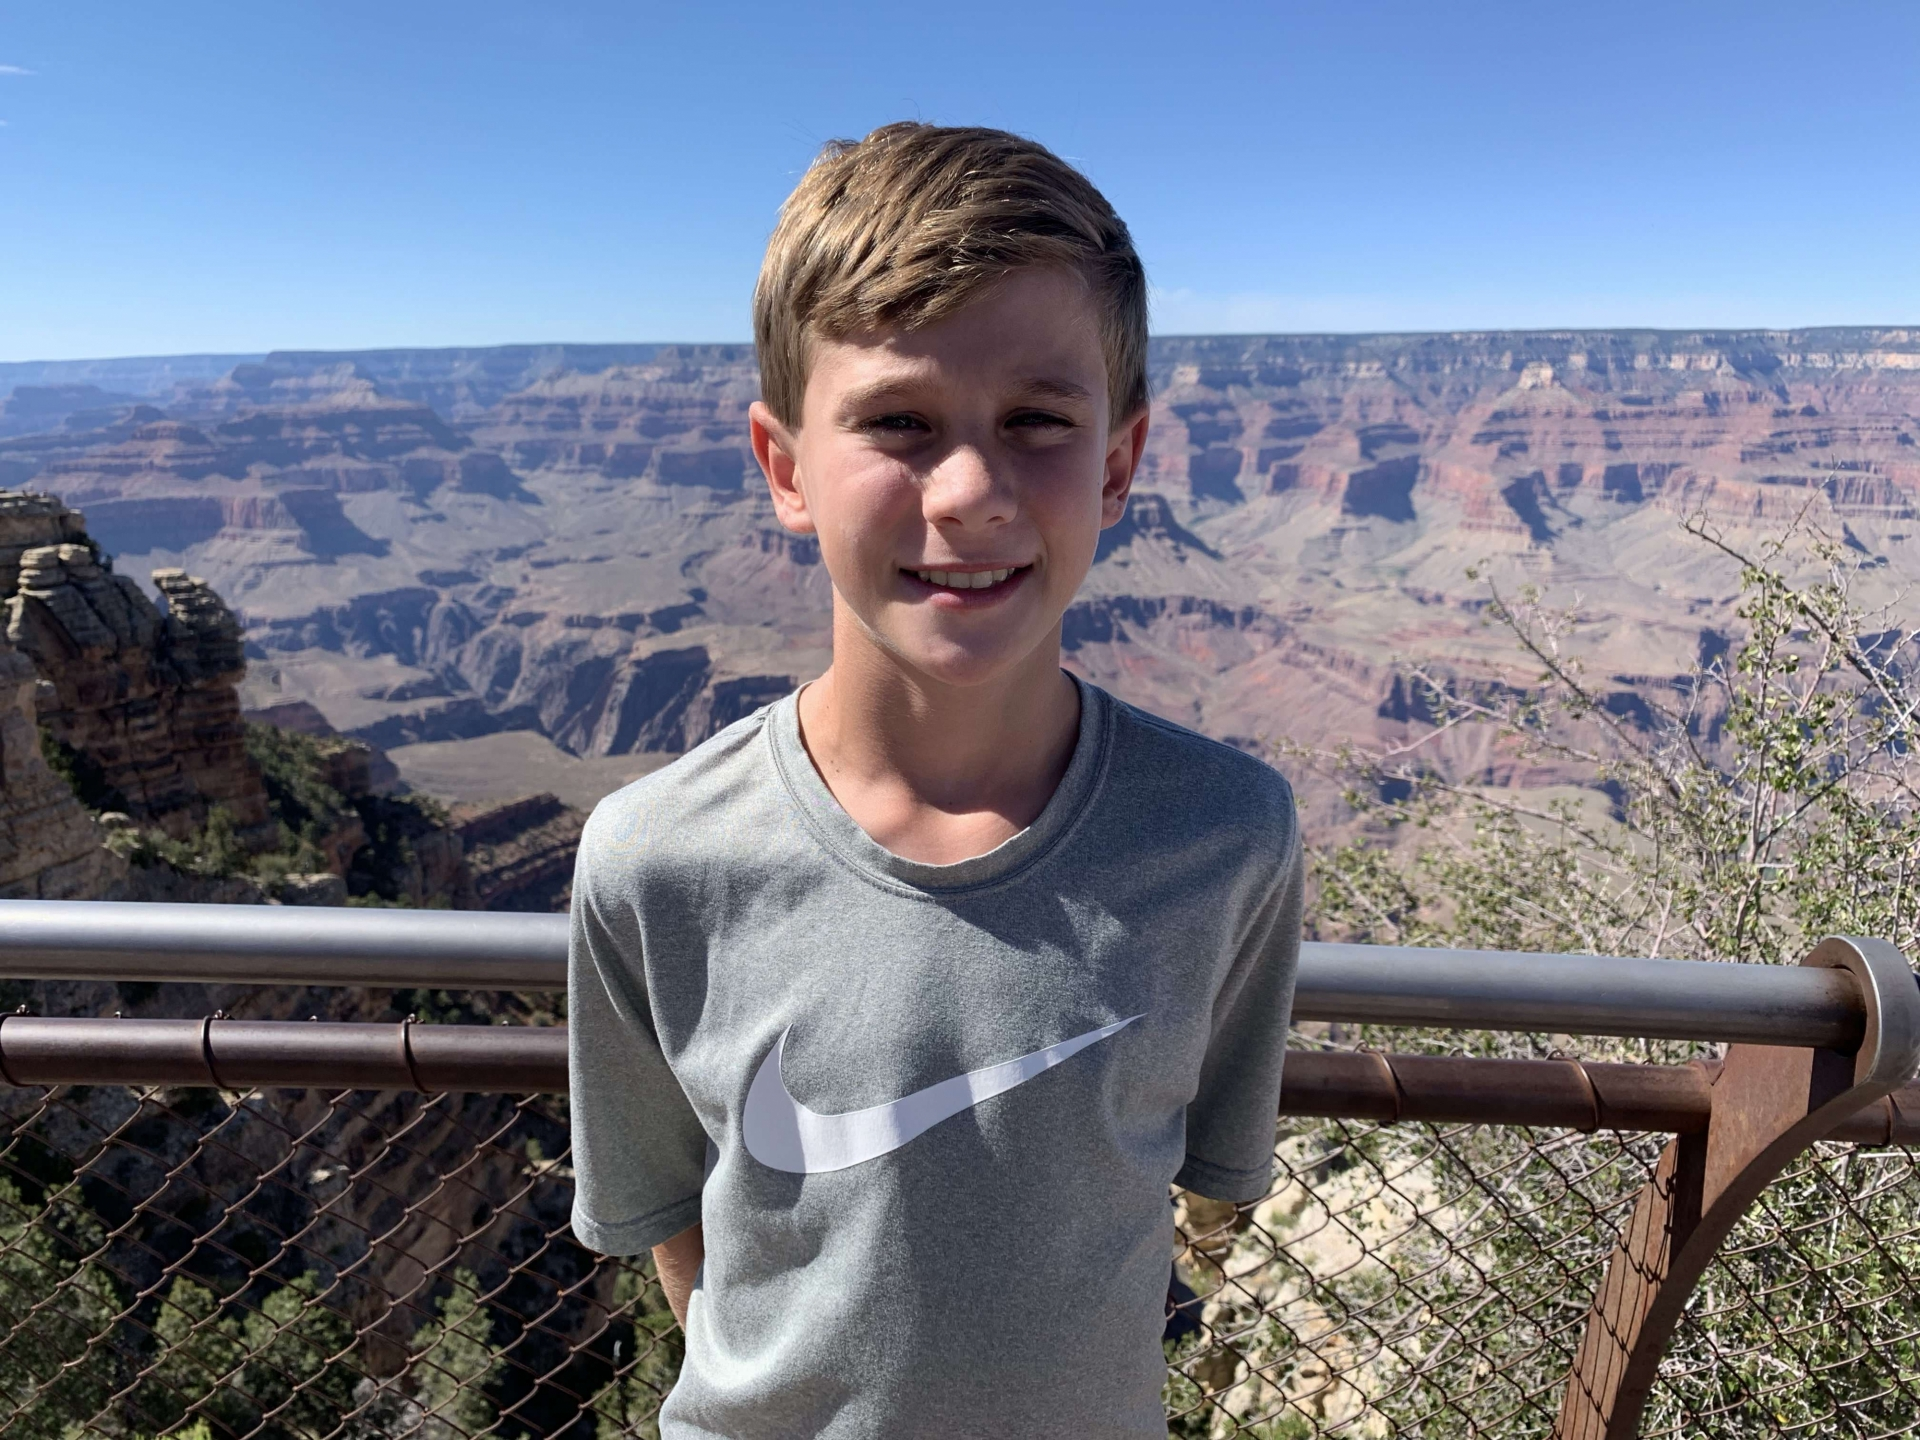 J.W. Powell Descendant at the Grand Canyon during its Centennial